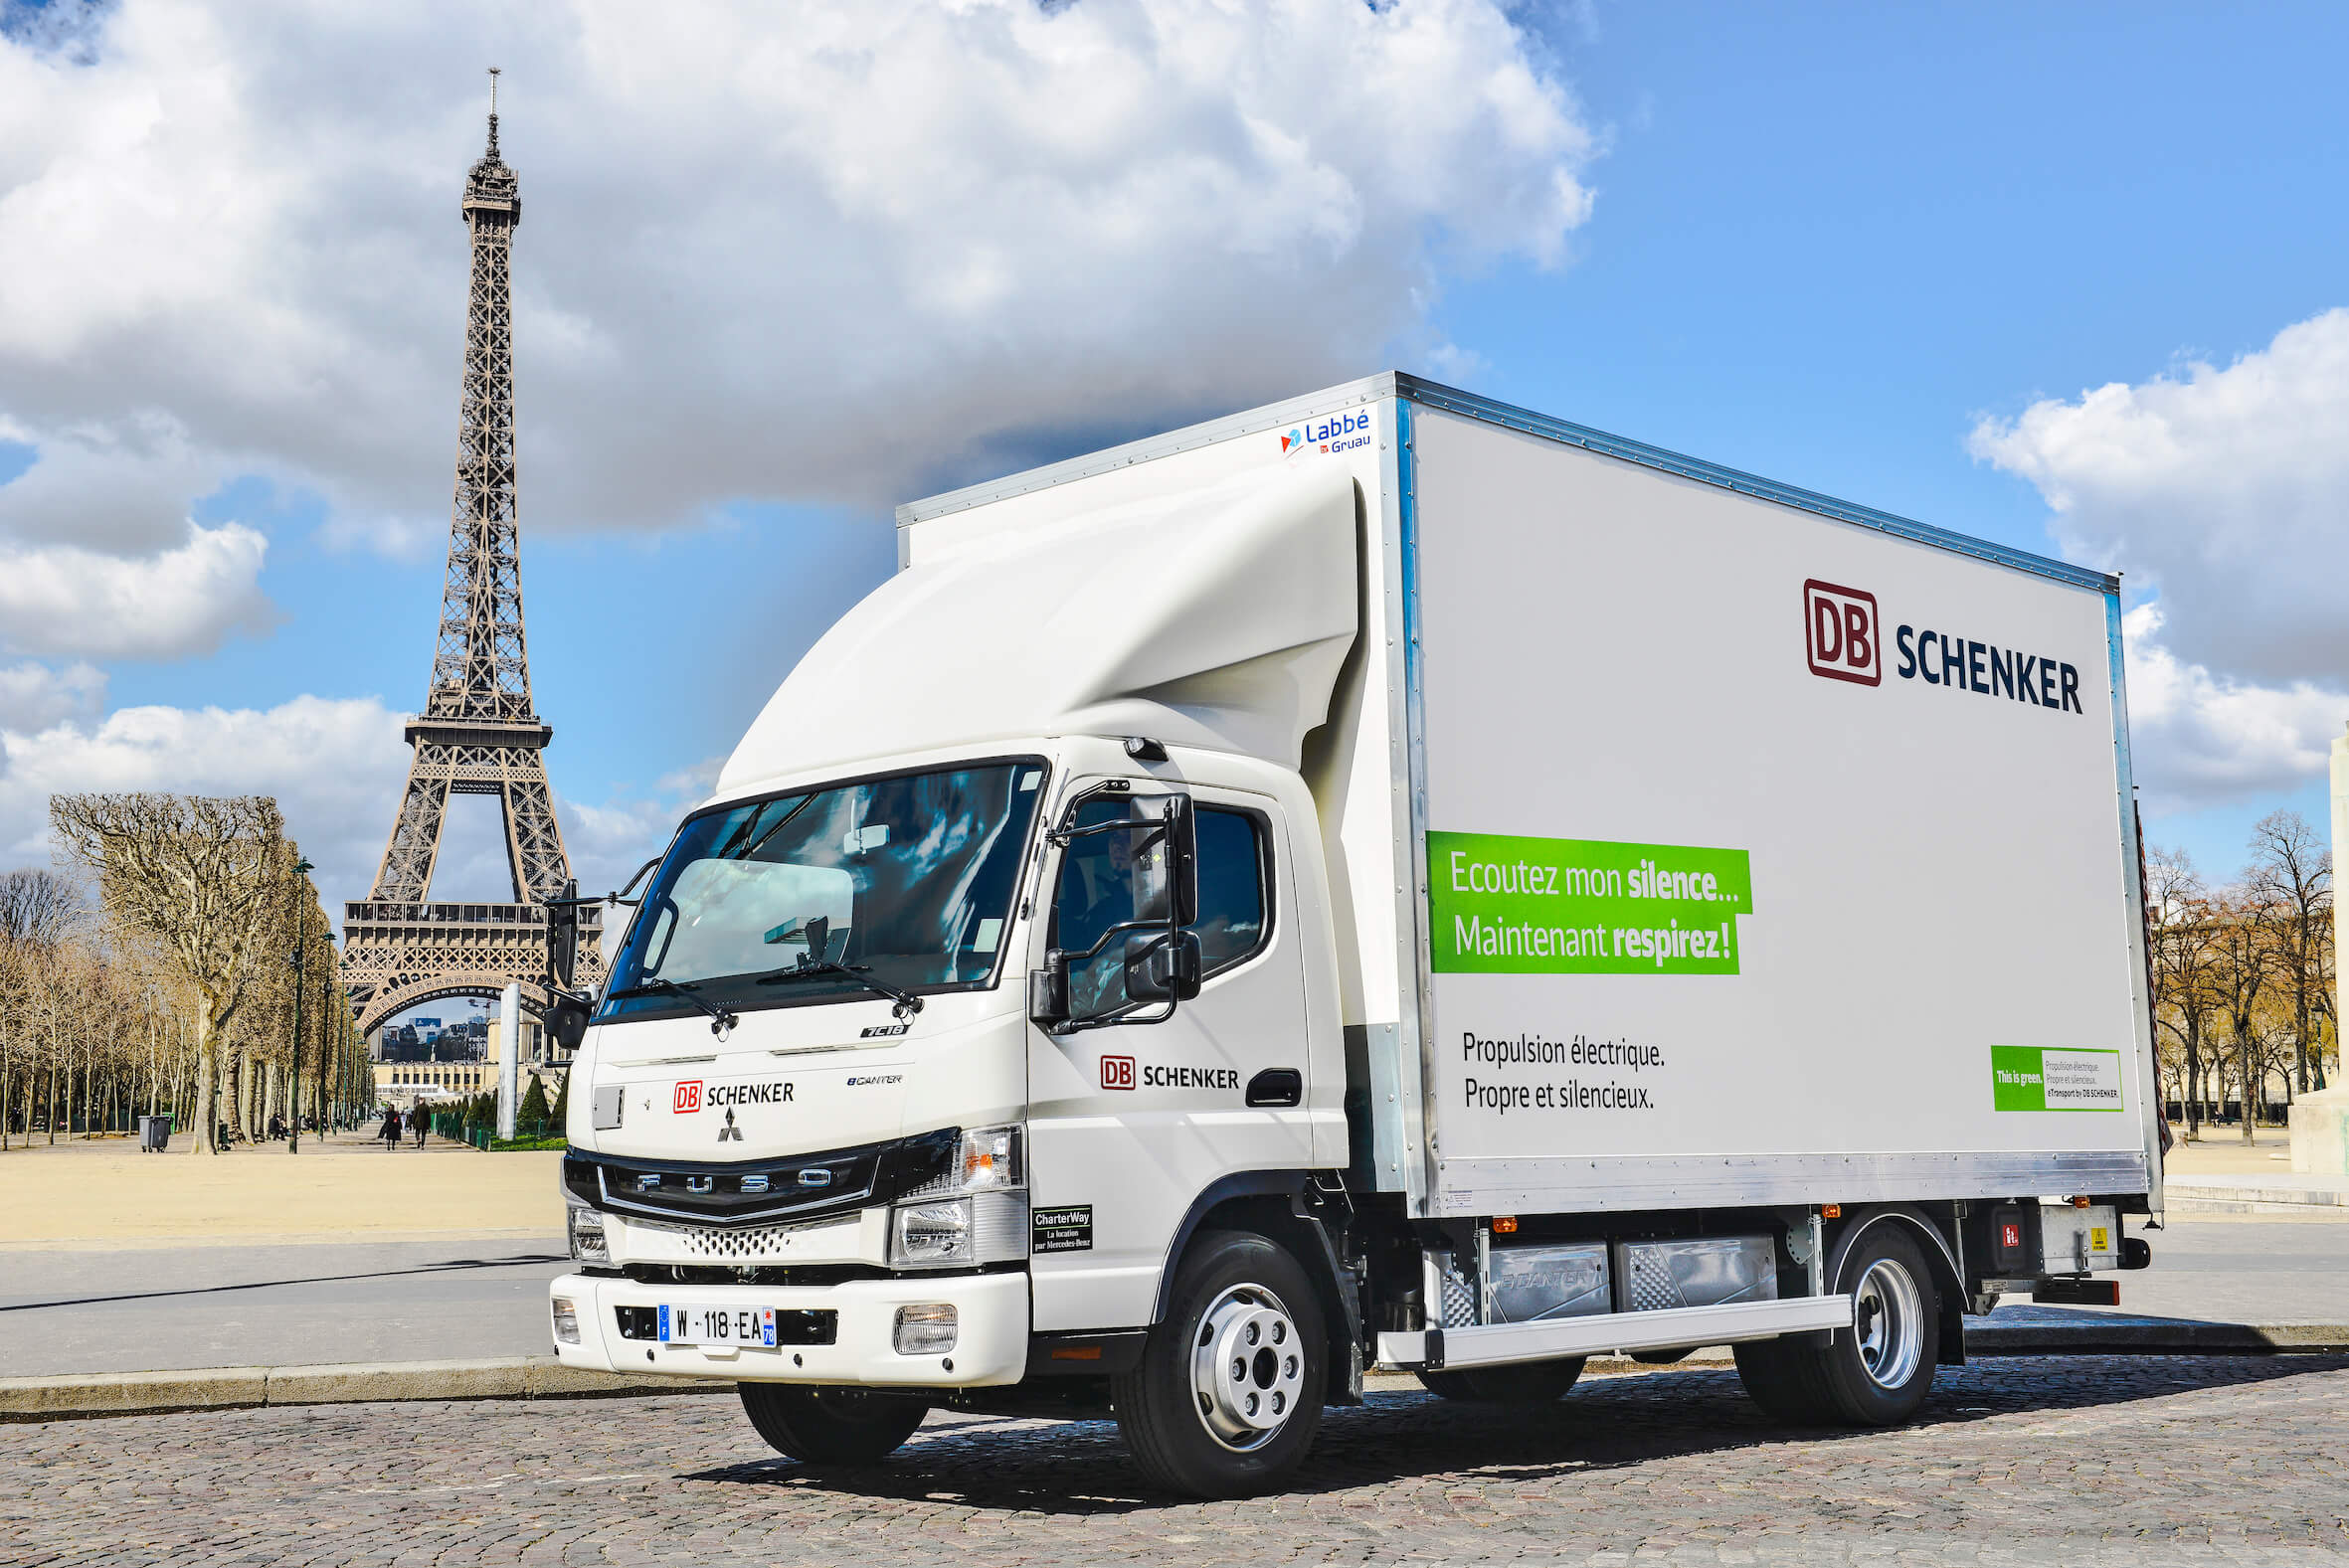 An eCanter in front of the Eiffel Tower in Paris. France's capital blocks trucks with combustion engines. © DB Schenker/O.Bos